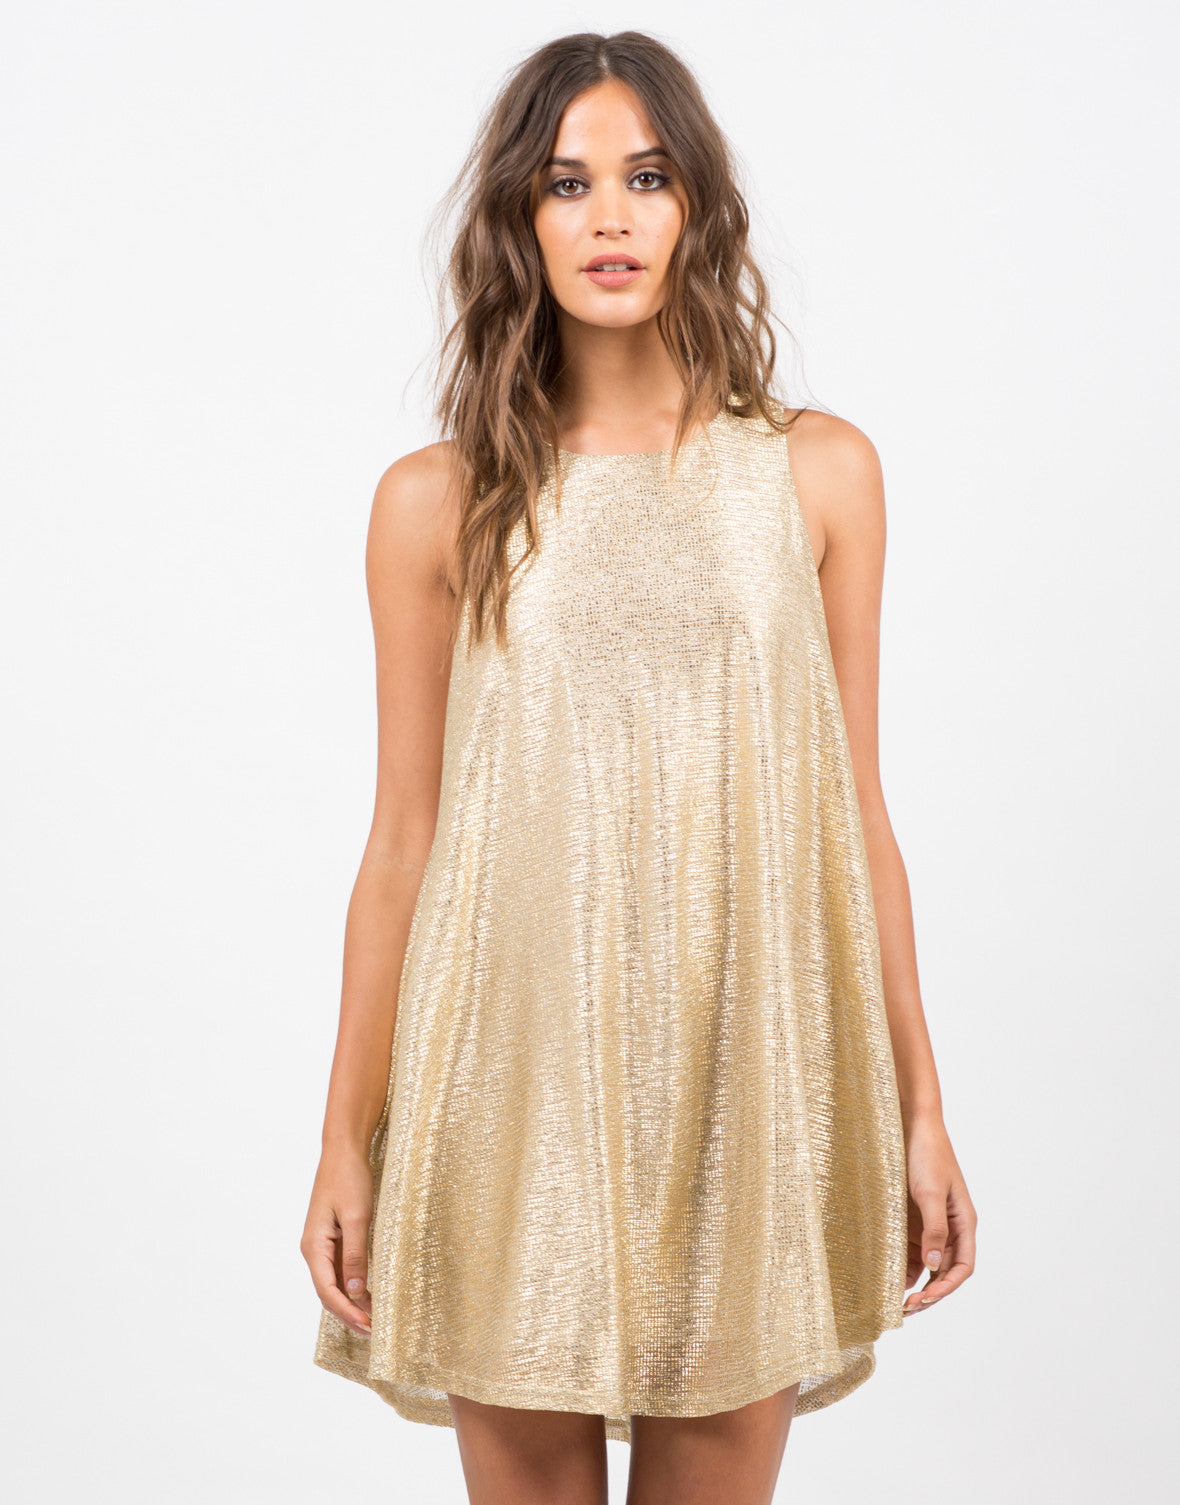 Front View of Golden Party Dress